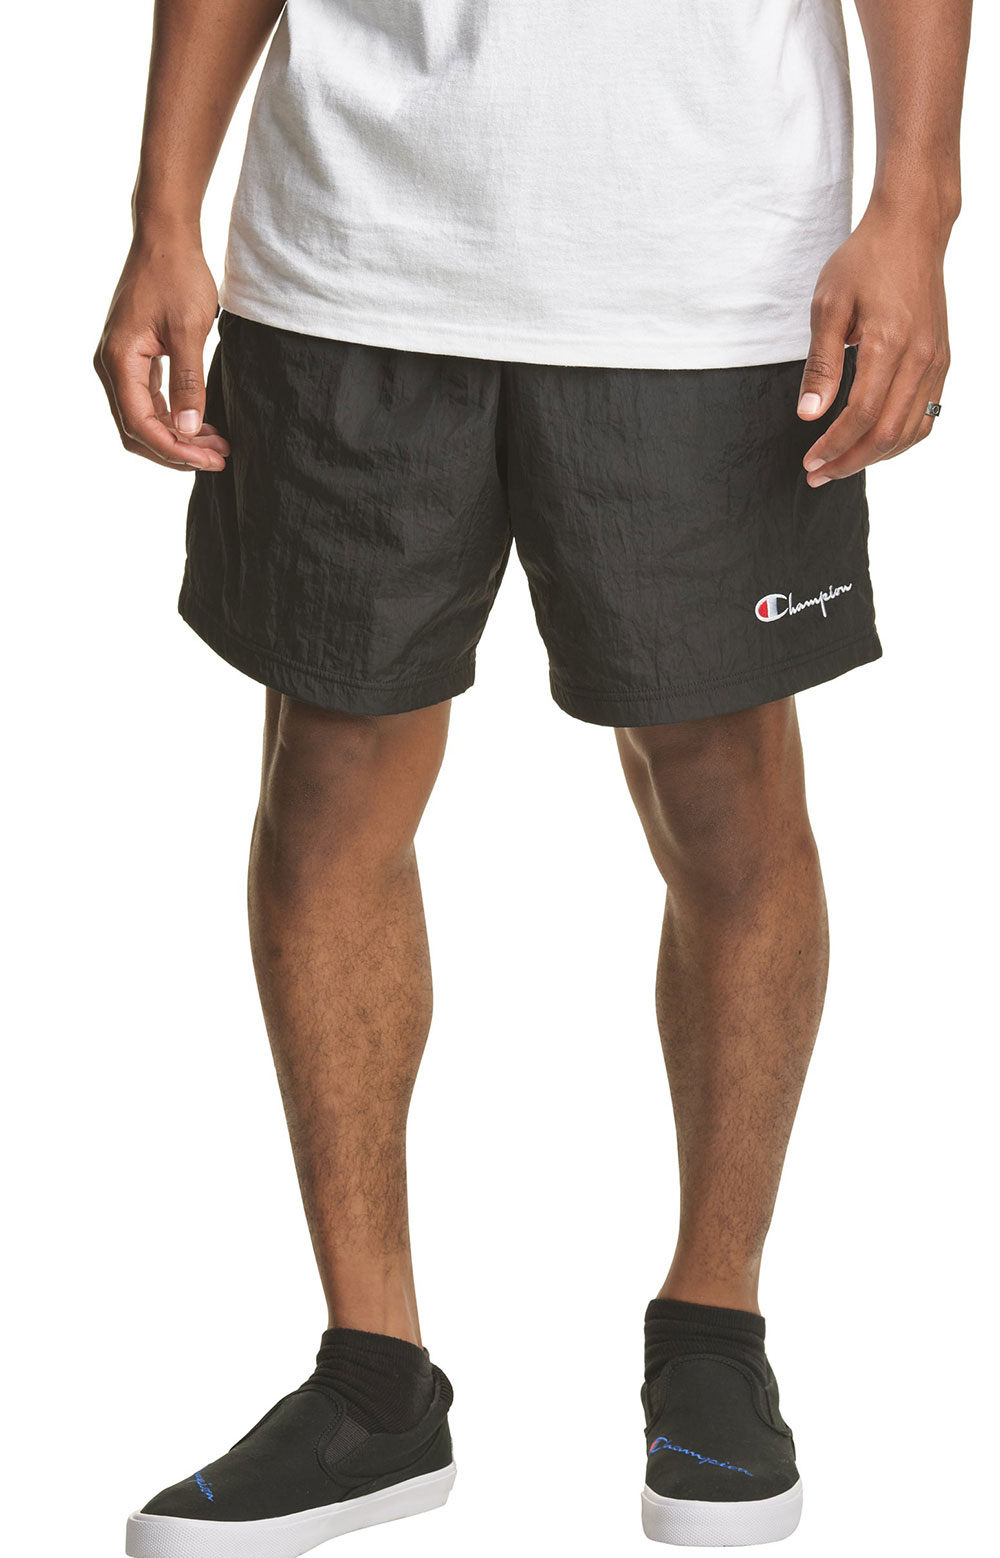 6-Inch Nylon Warm Up Shorts - Black 3